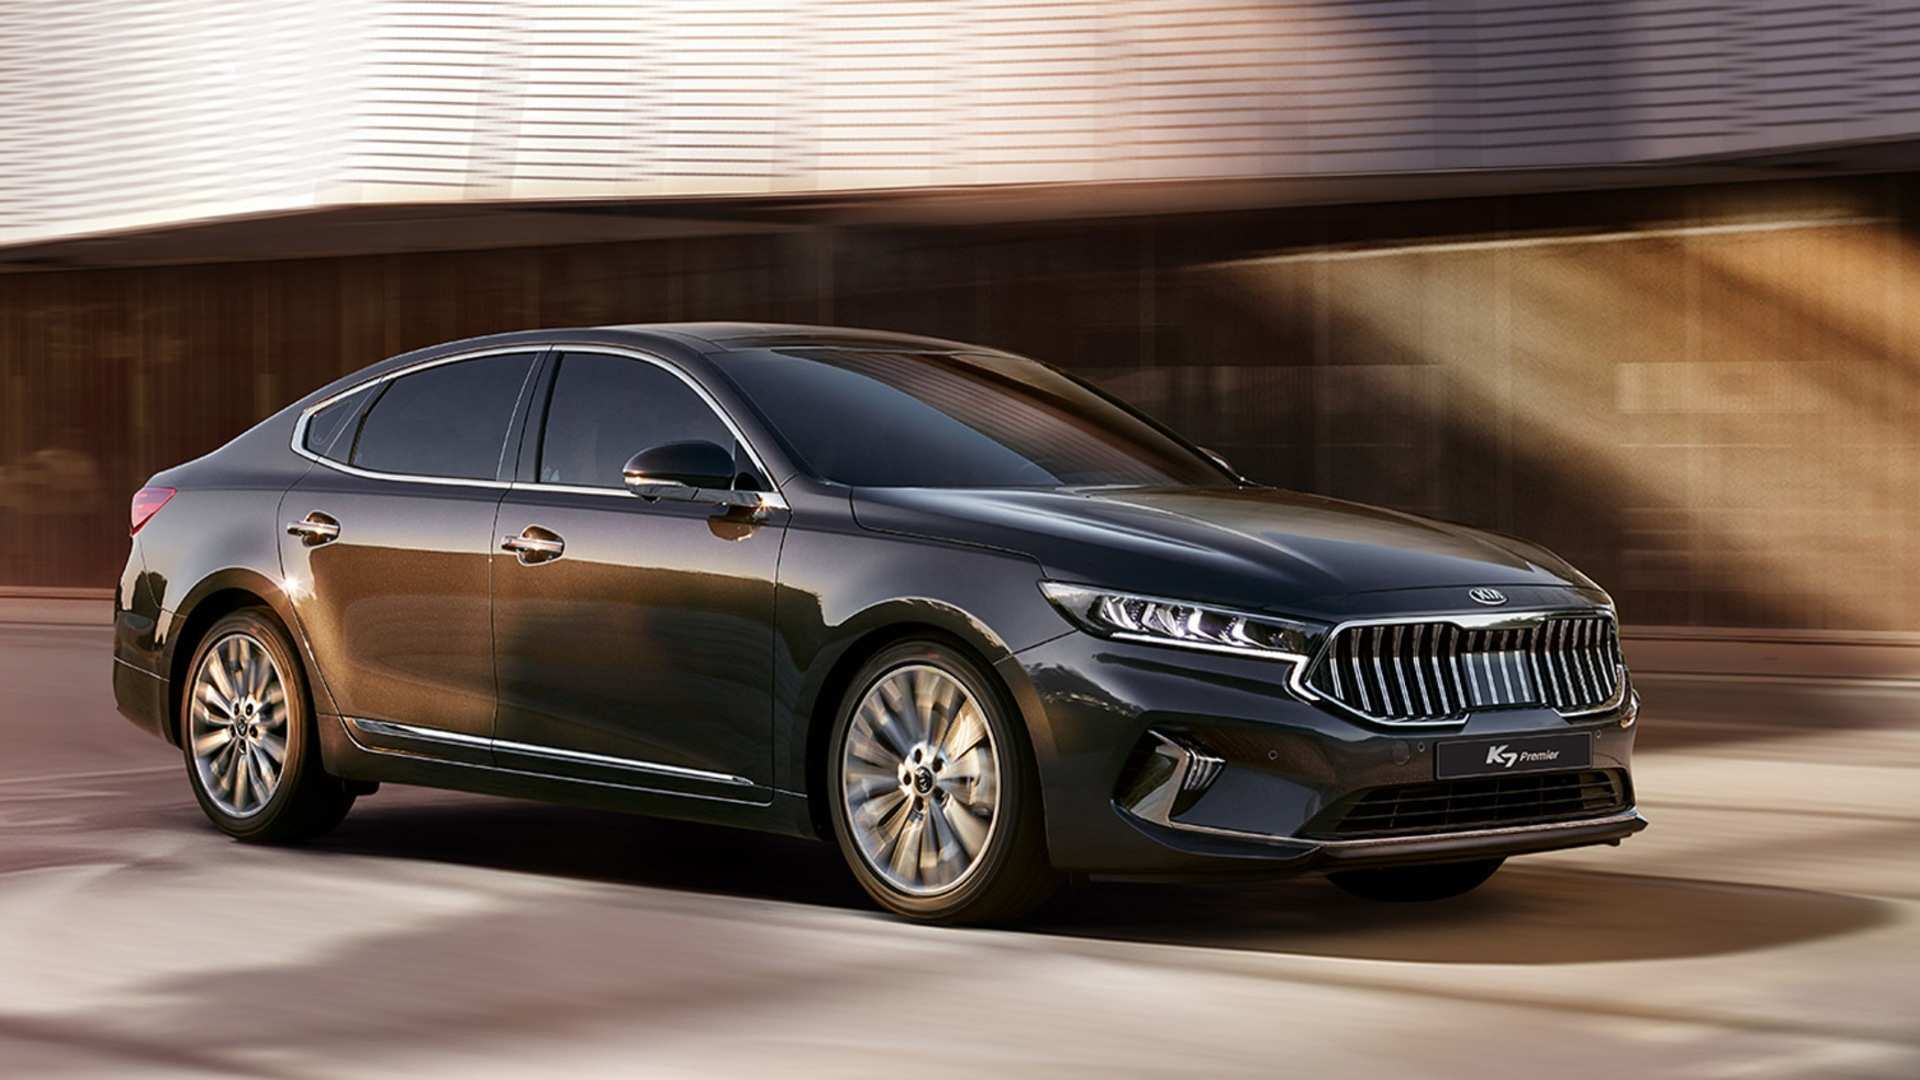 87 New 2020 All Kia Cadenza Price And Release Date